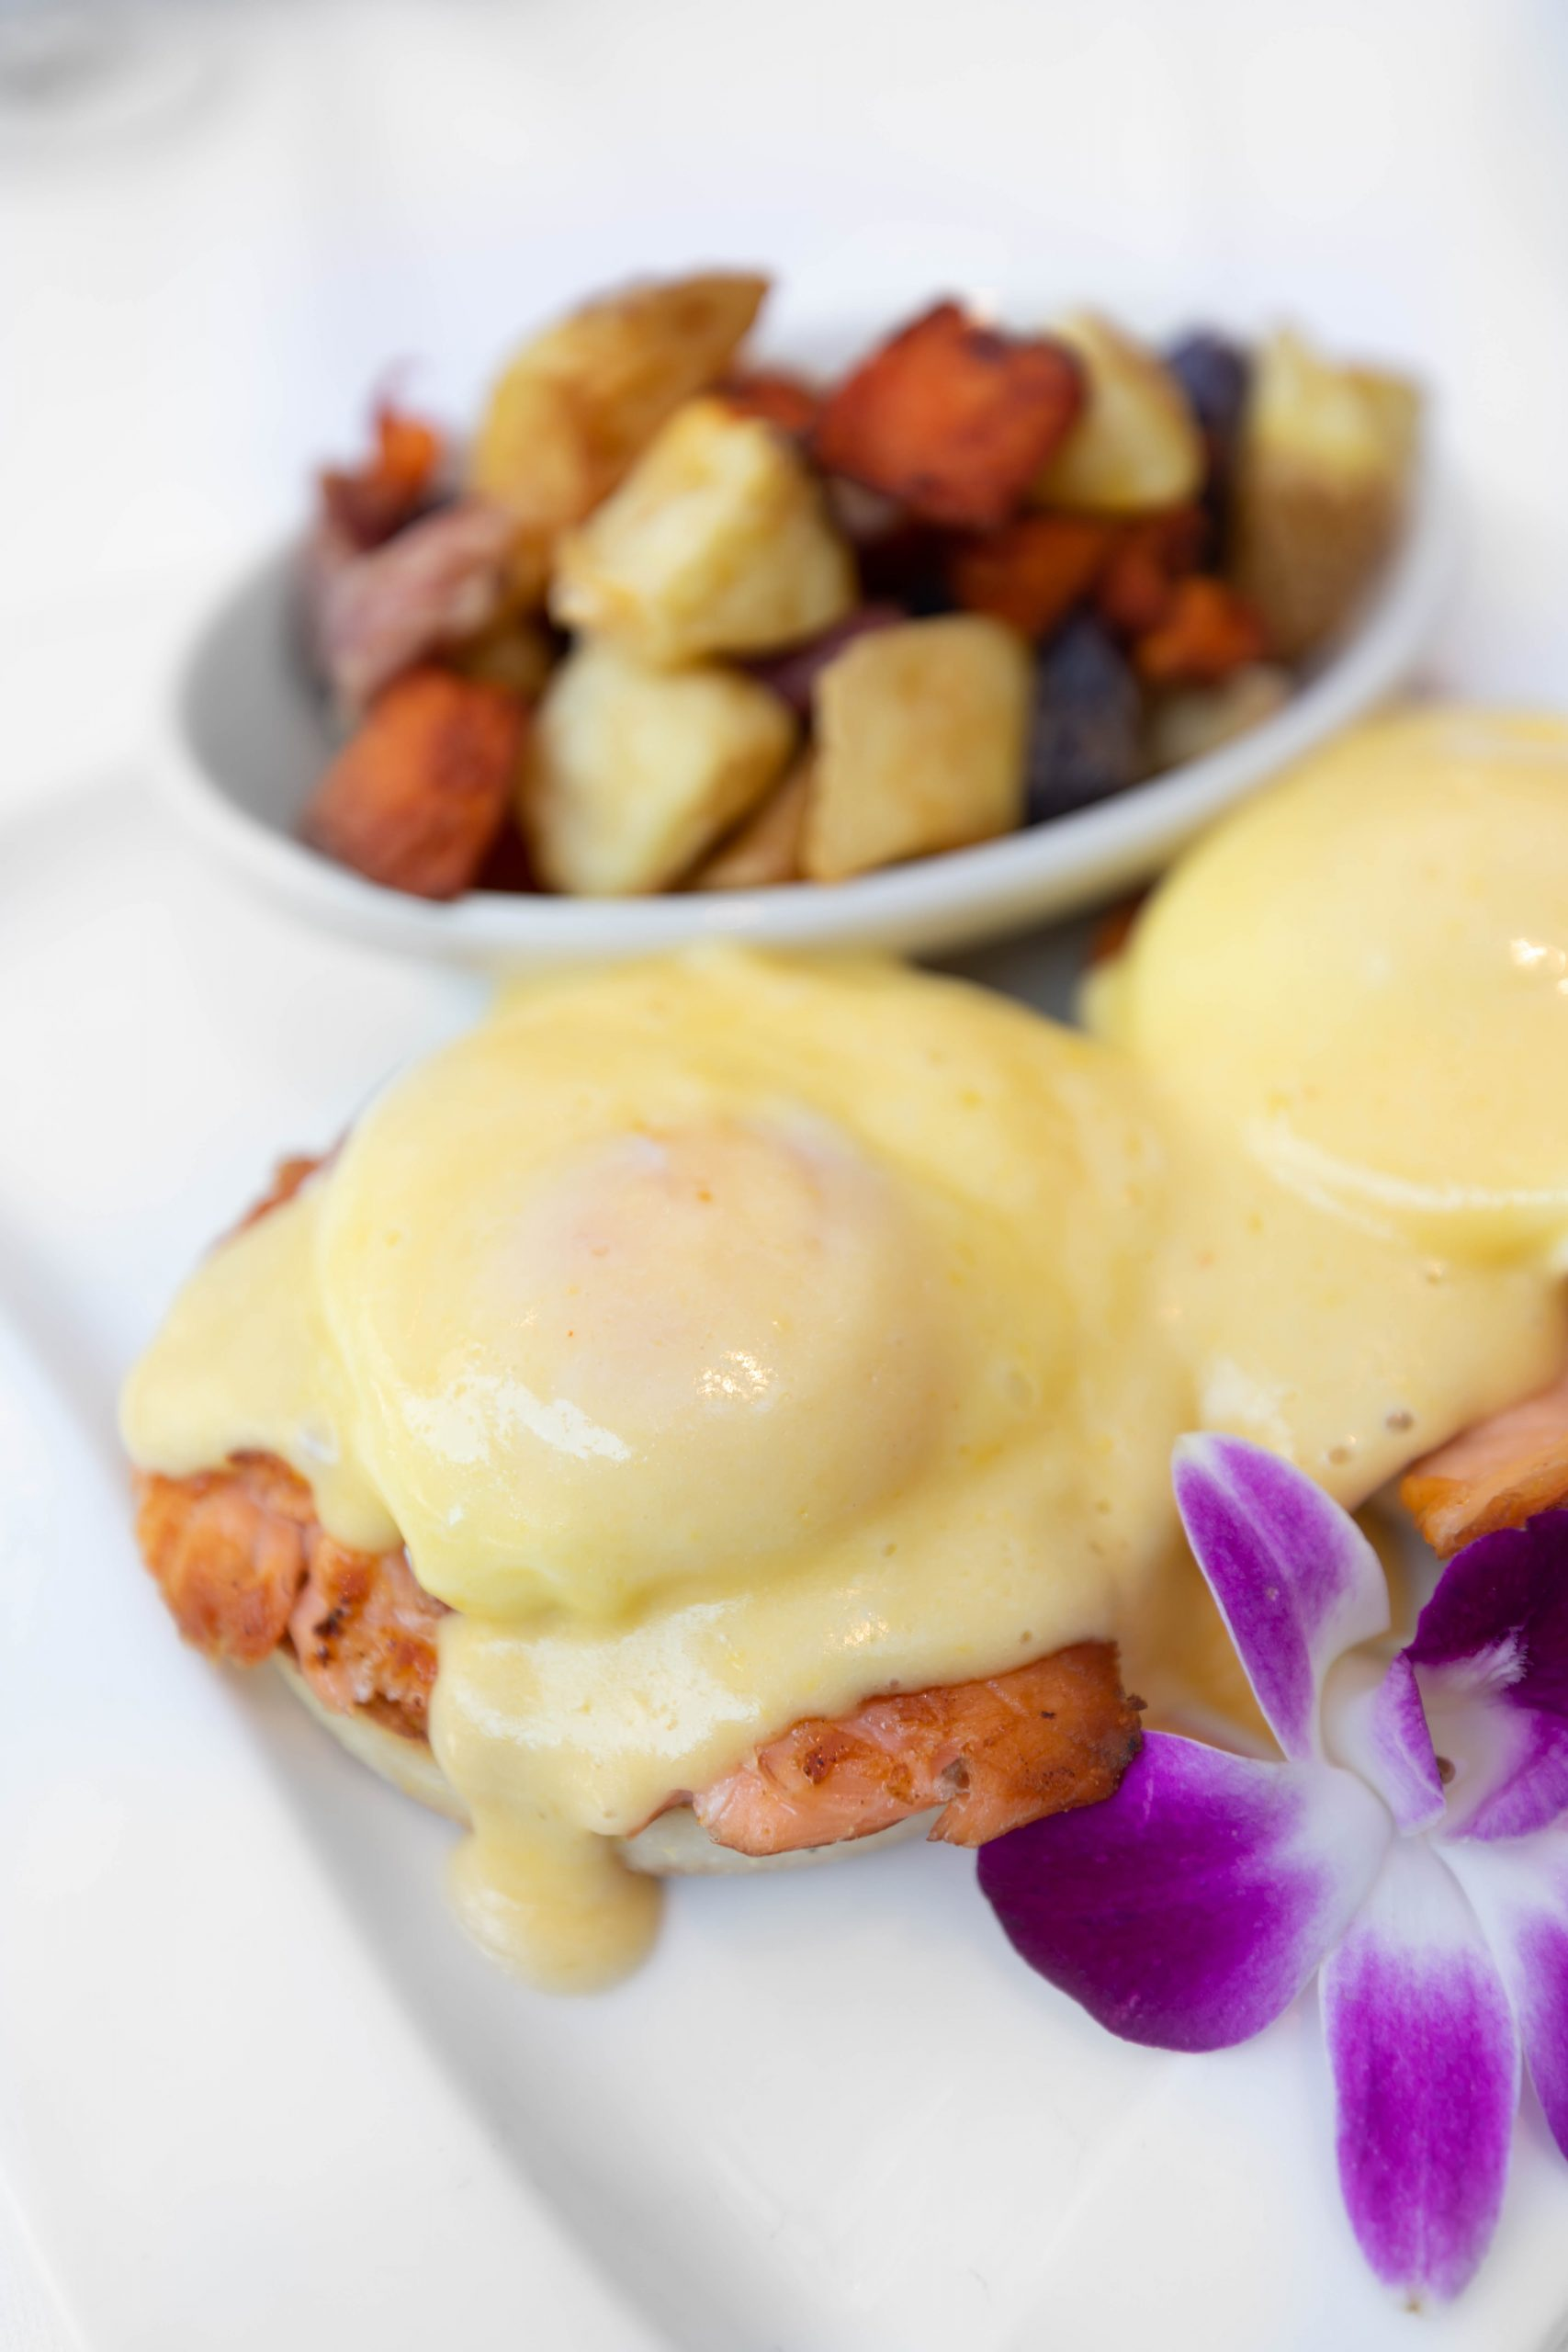 Smoked Salmon Eggs Benedict at Palmetto Café Inside Belmond Charleston Place Luxury Hotel Written & Photographed by Annie Fairfax